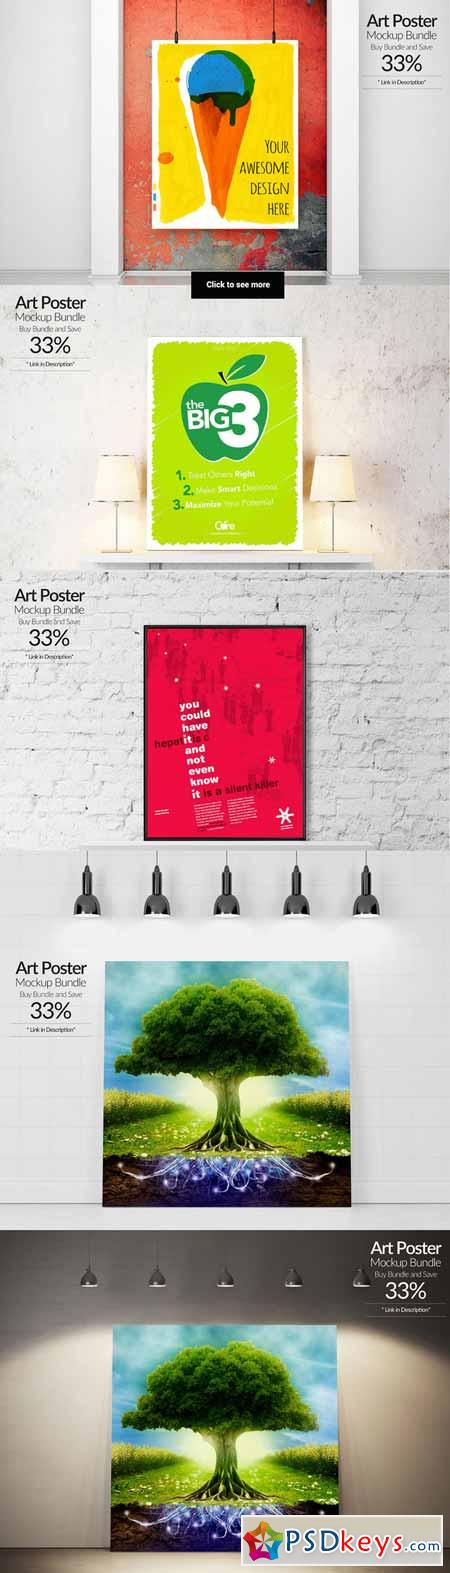 Art Poster Mockup Bundle 142442